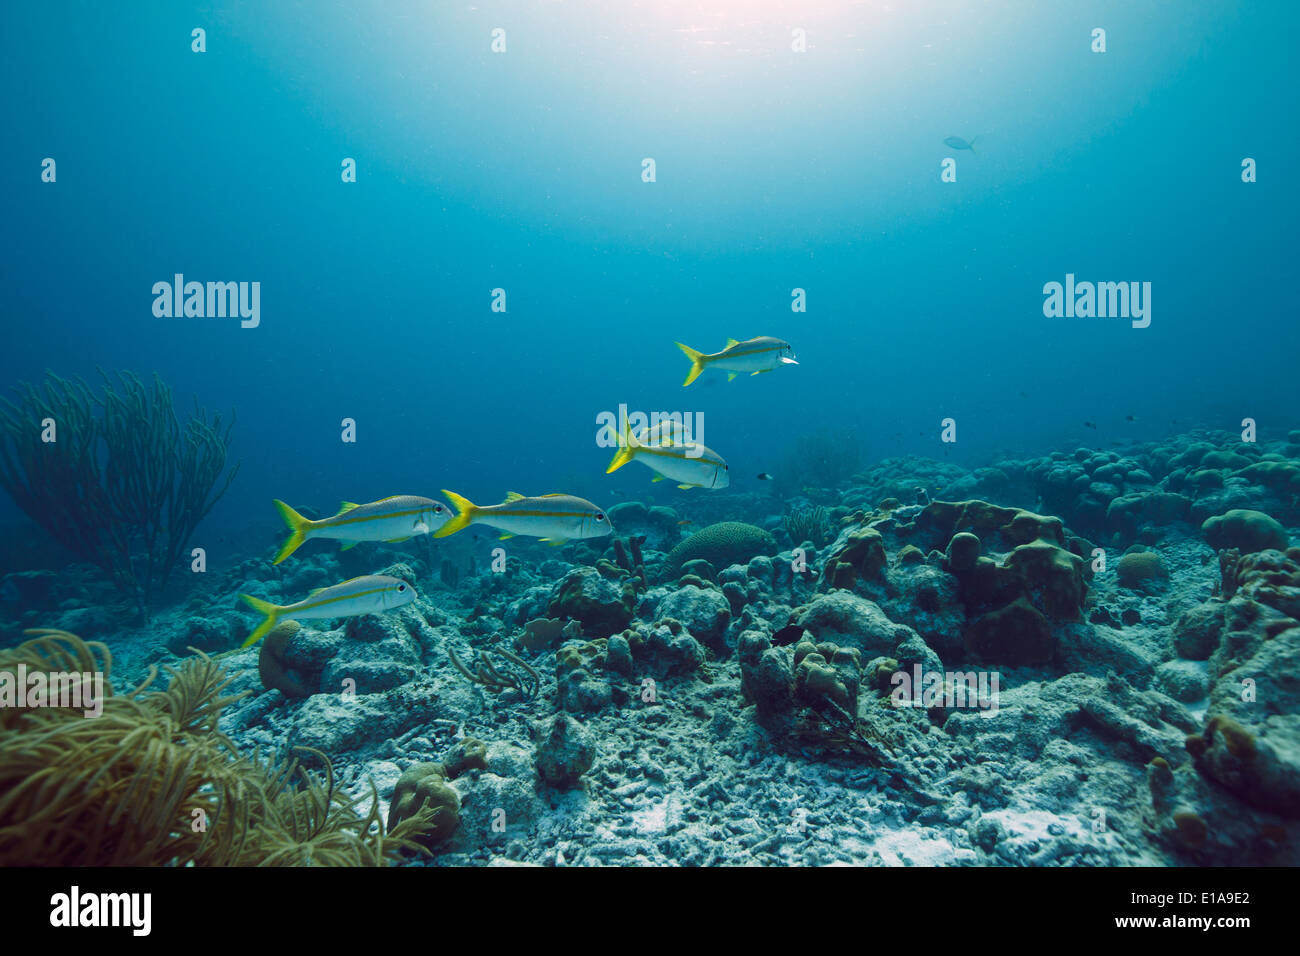 Yello goatfishes in the Caribbean sea around Bonaire. Divesite Andrea I. Grote zeeroede. - Stock Image